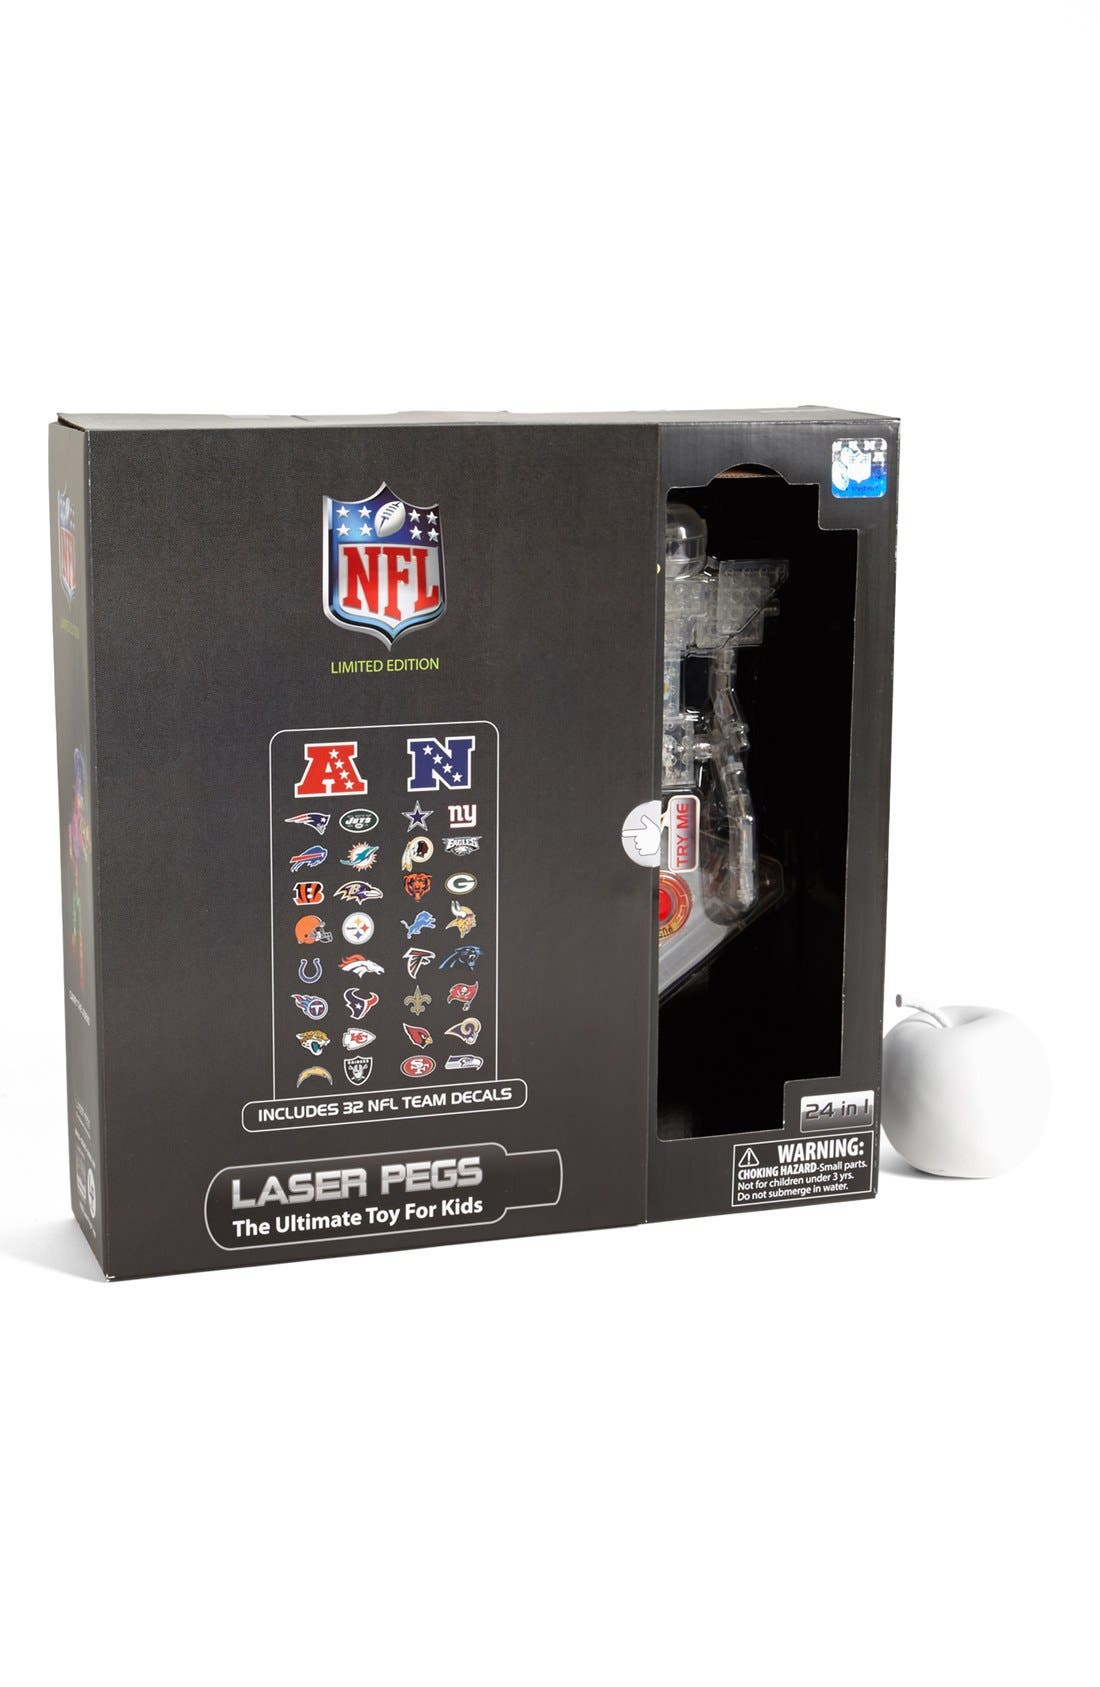 Main Image - Laser Pegs 'NFL' 24-in-1 Robot